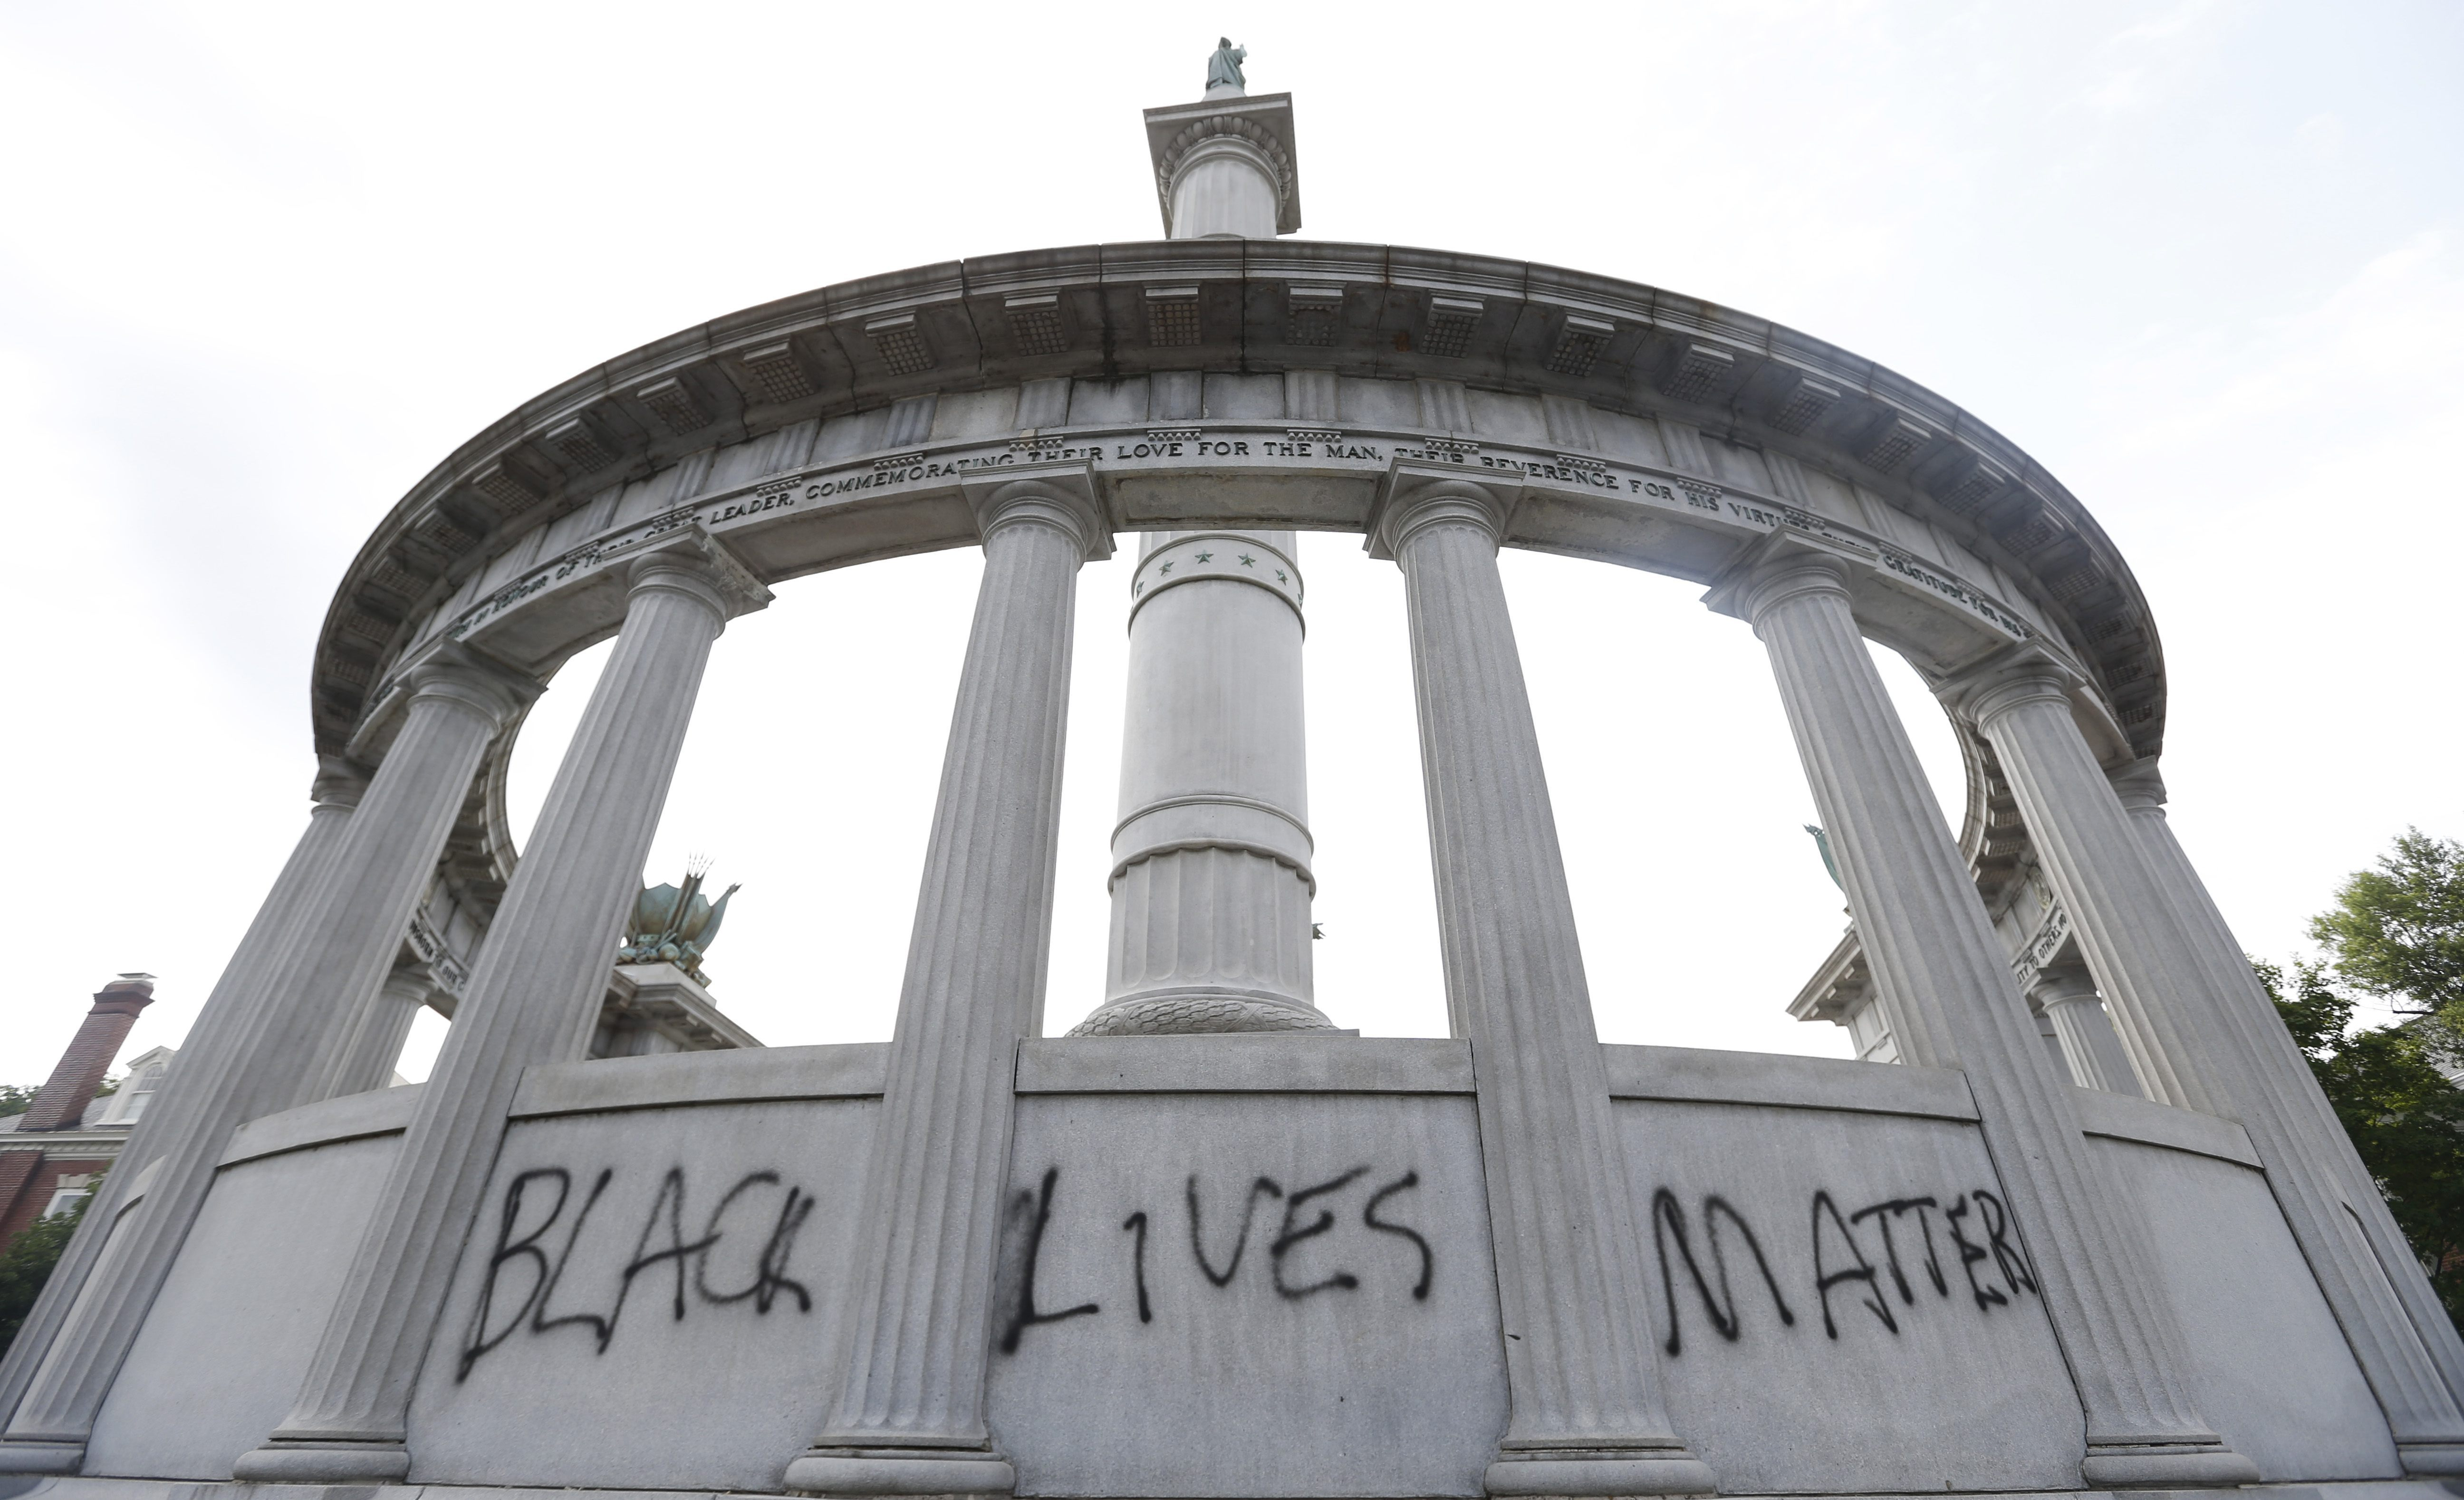 national cathedral vandalized. national cathedral vandalized